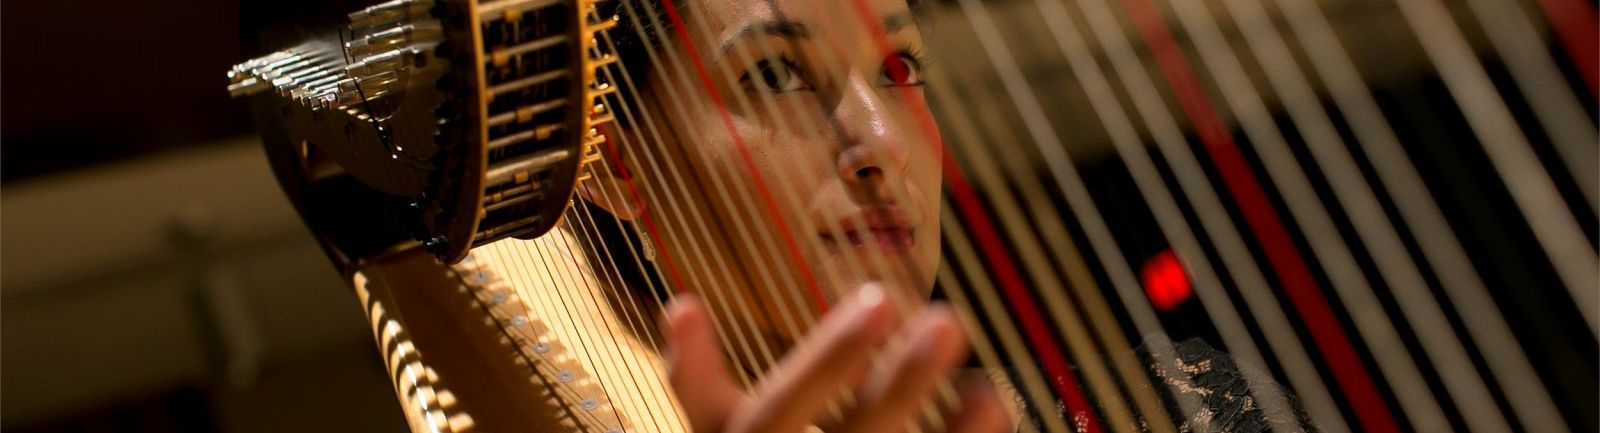 Woman playing the harp.